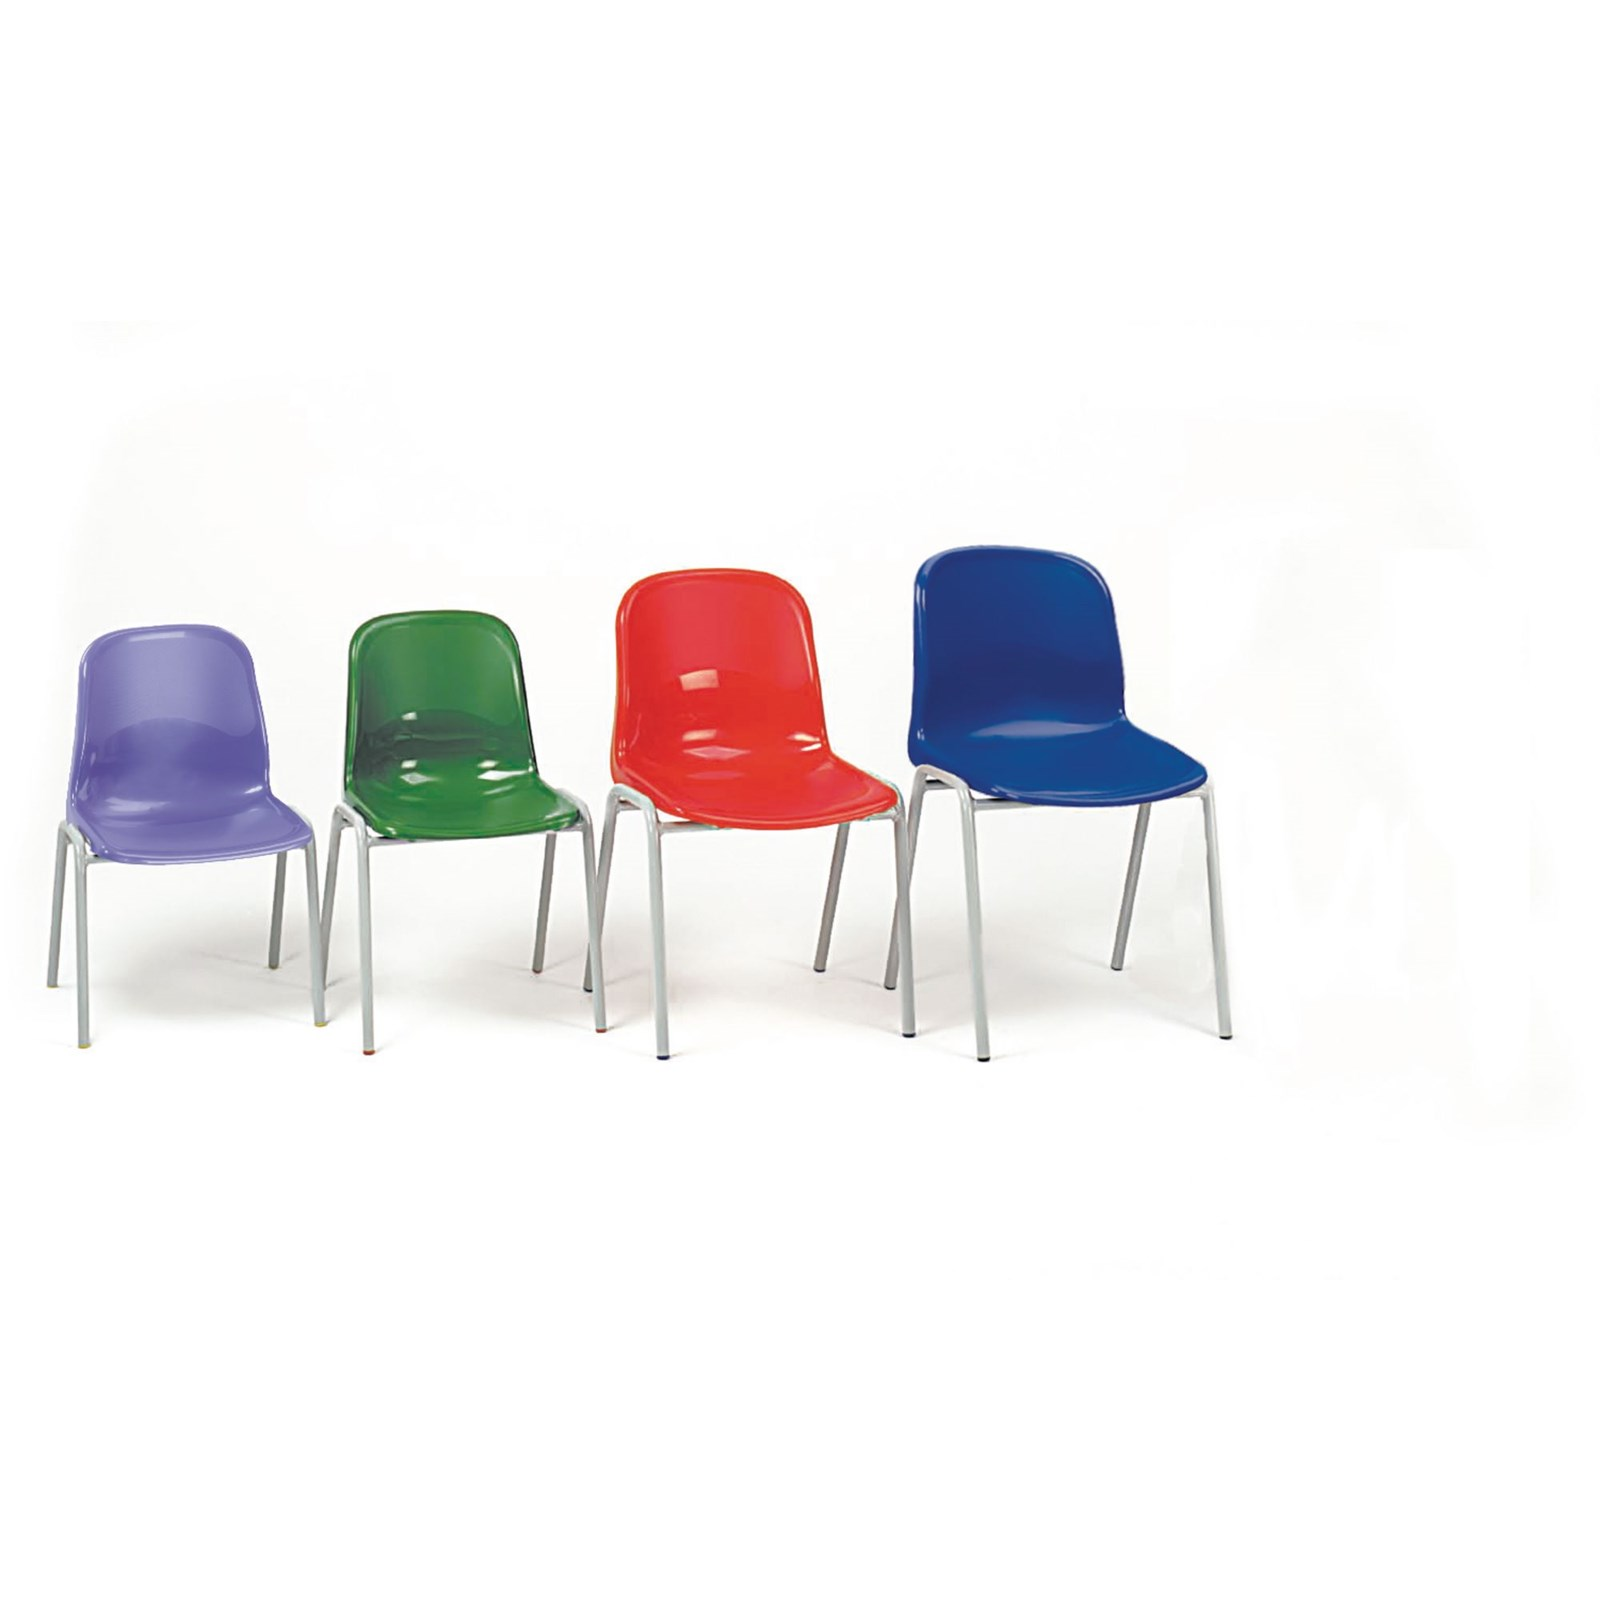 Harmony Stackable Classroom Chair - Seat height: 430mm - Red